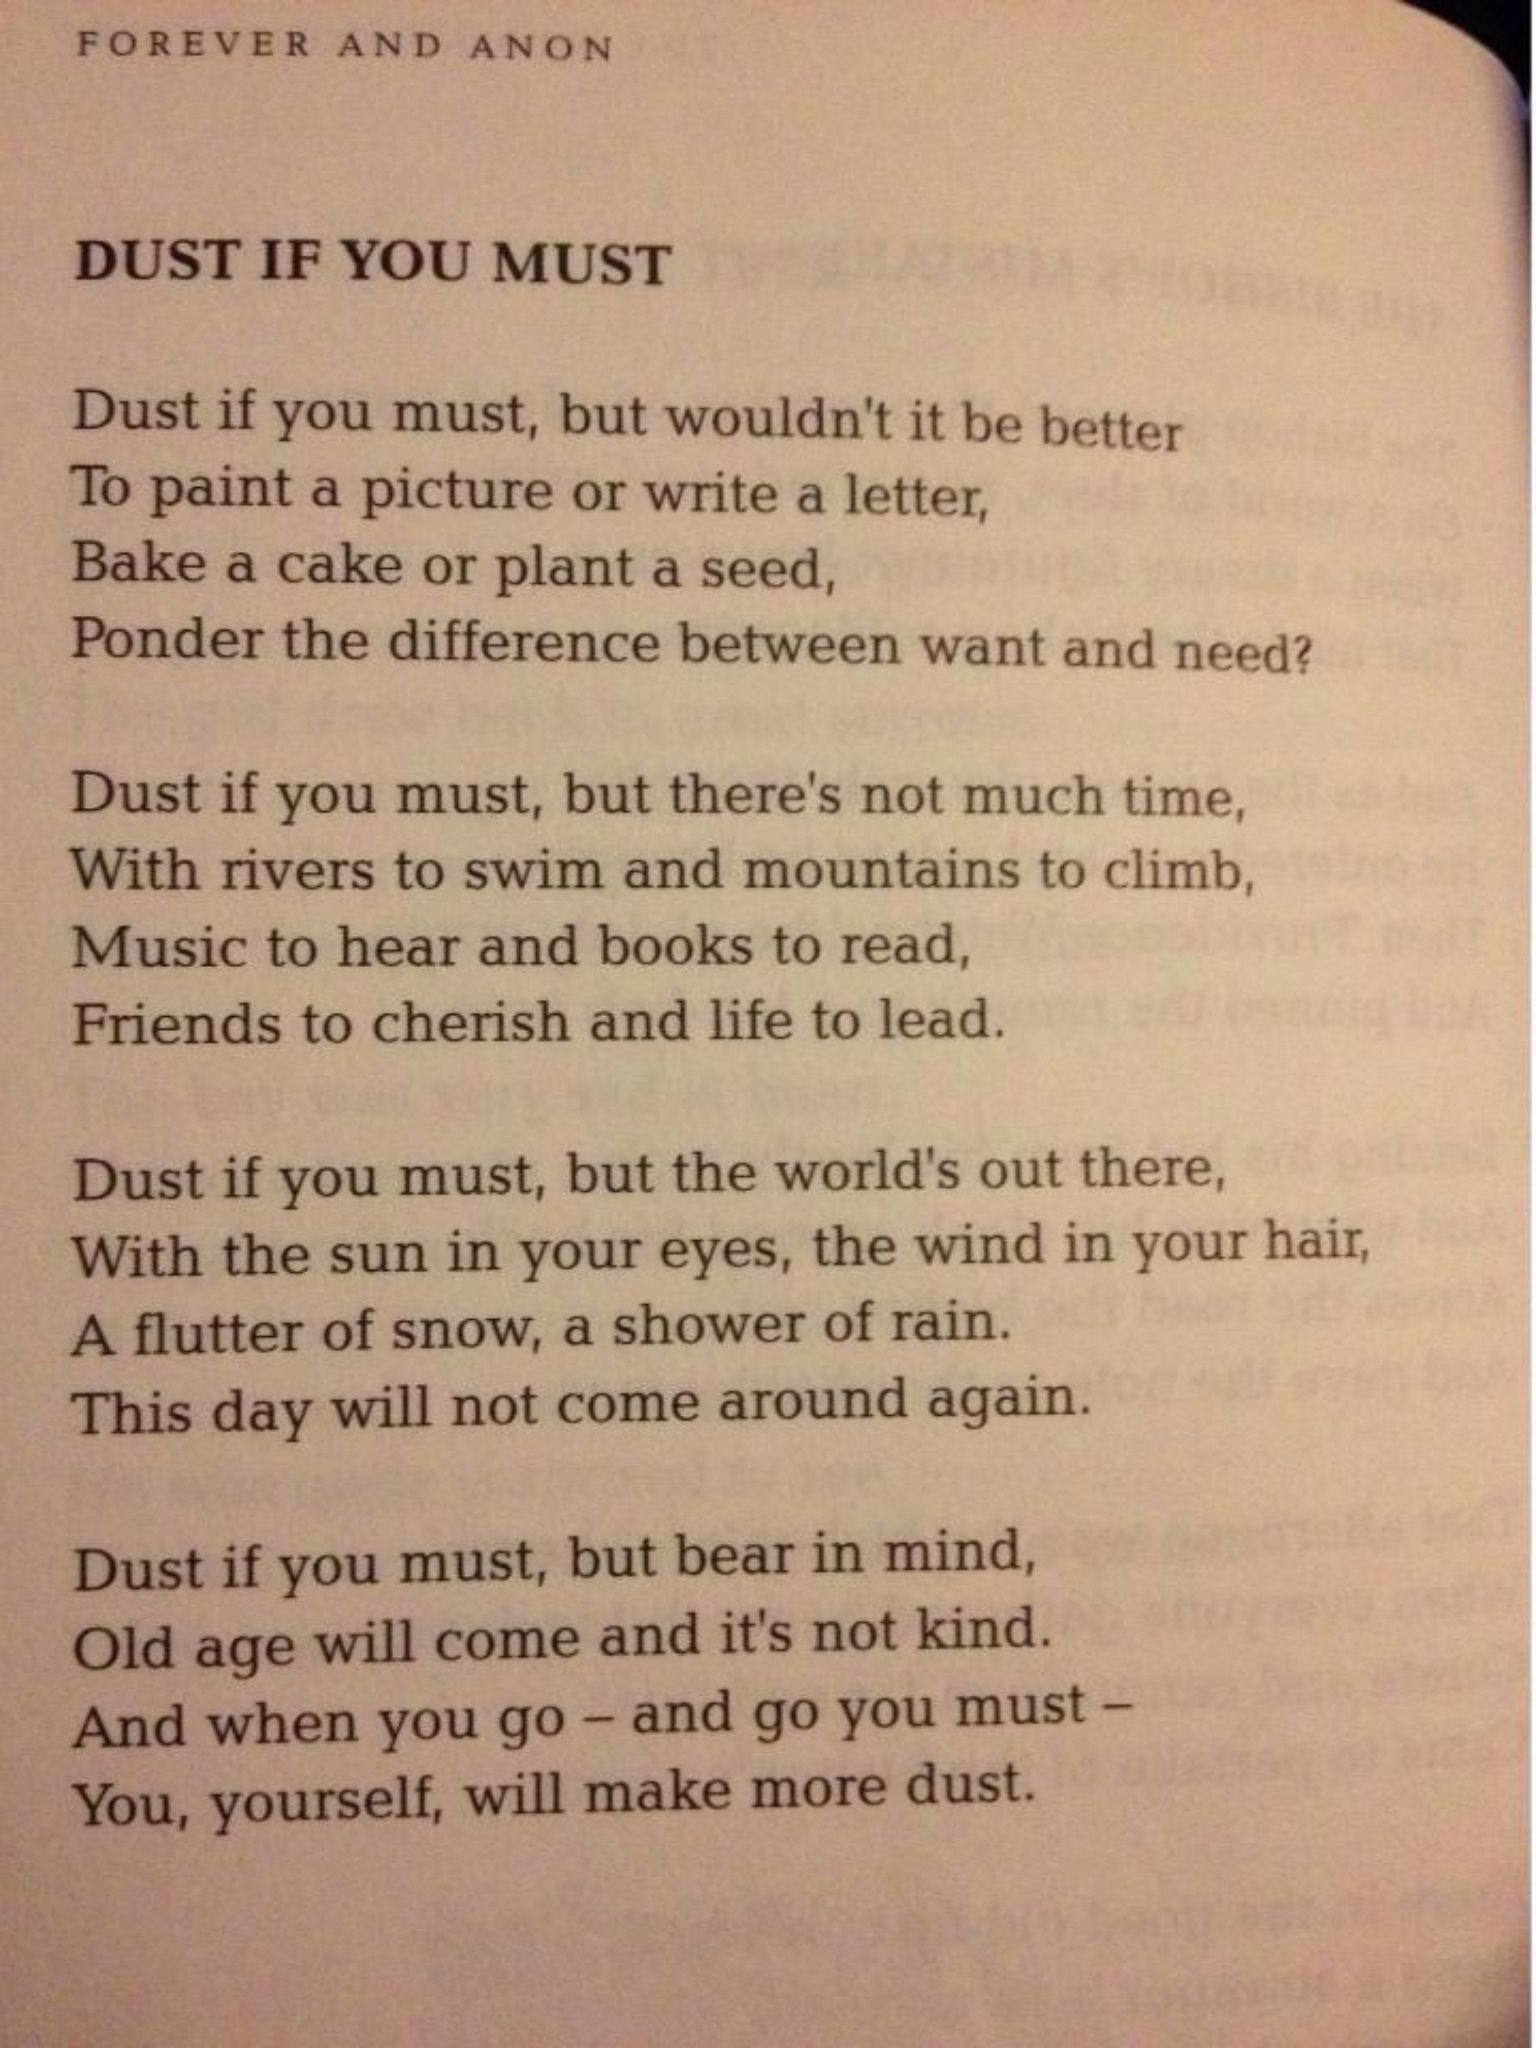 an adaptation of the poem by paul lawrence we wear the mask we dust if you must poem